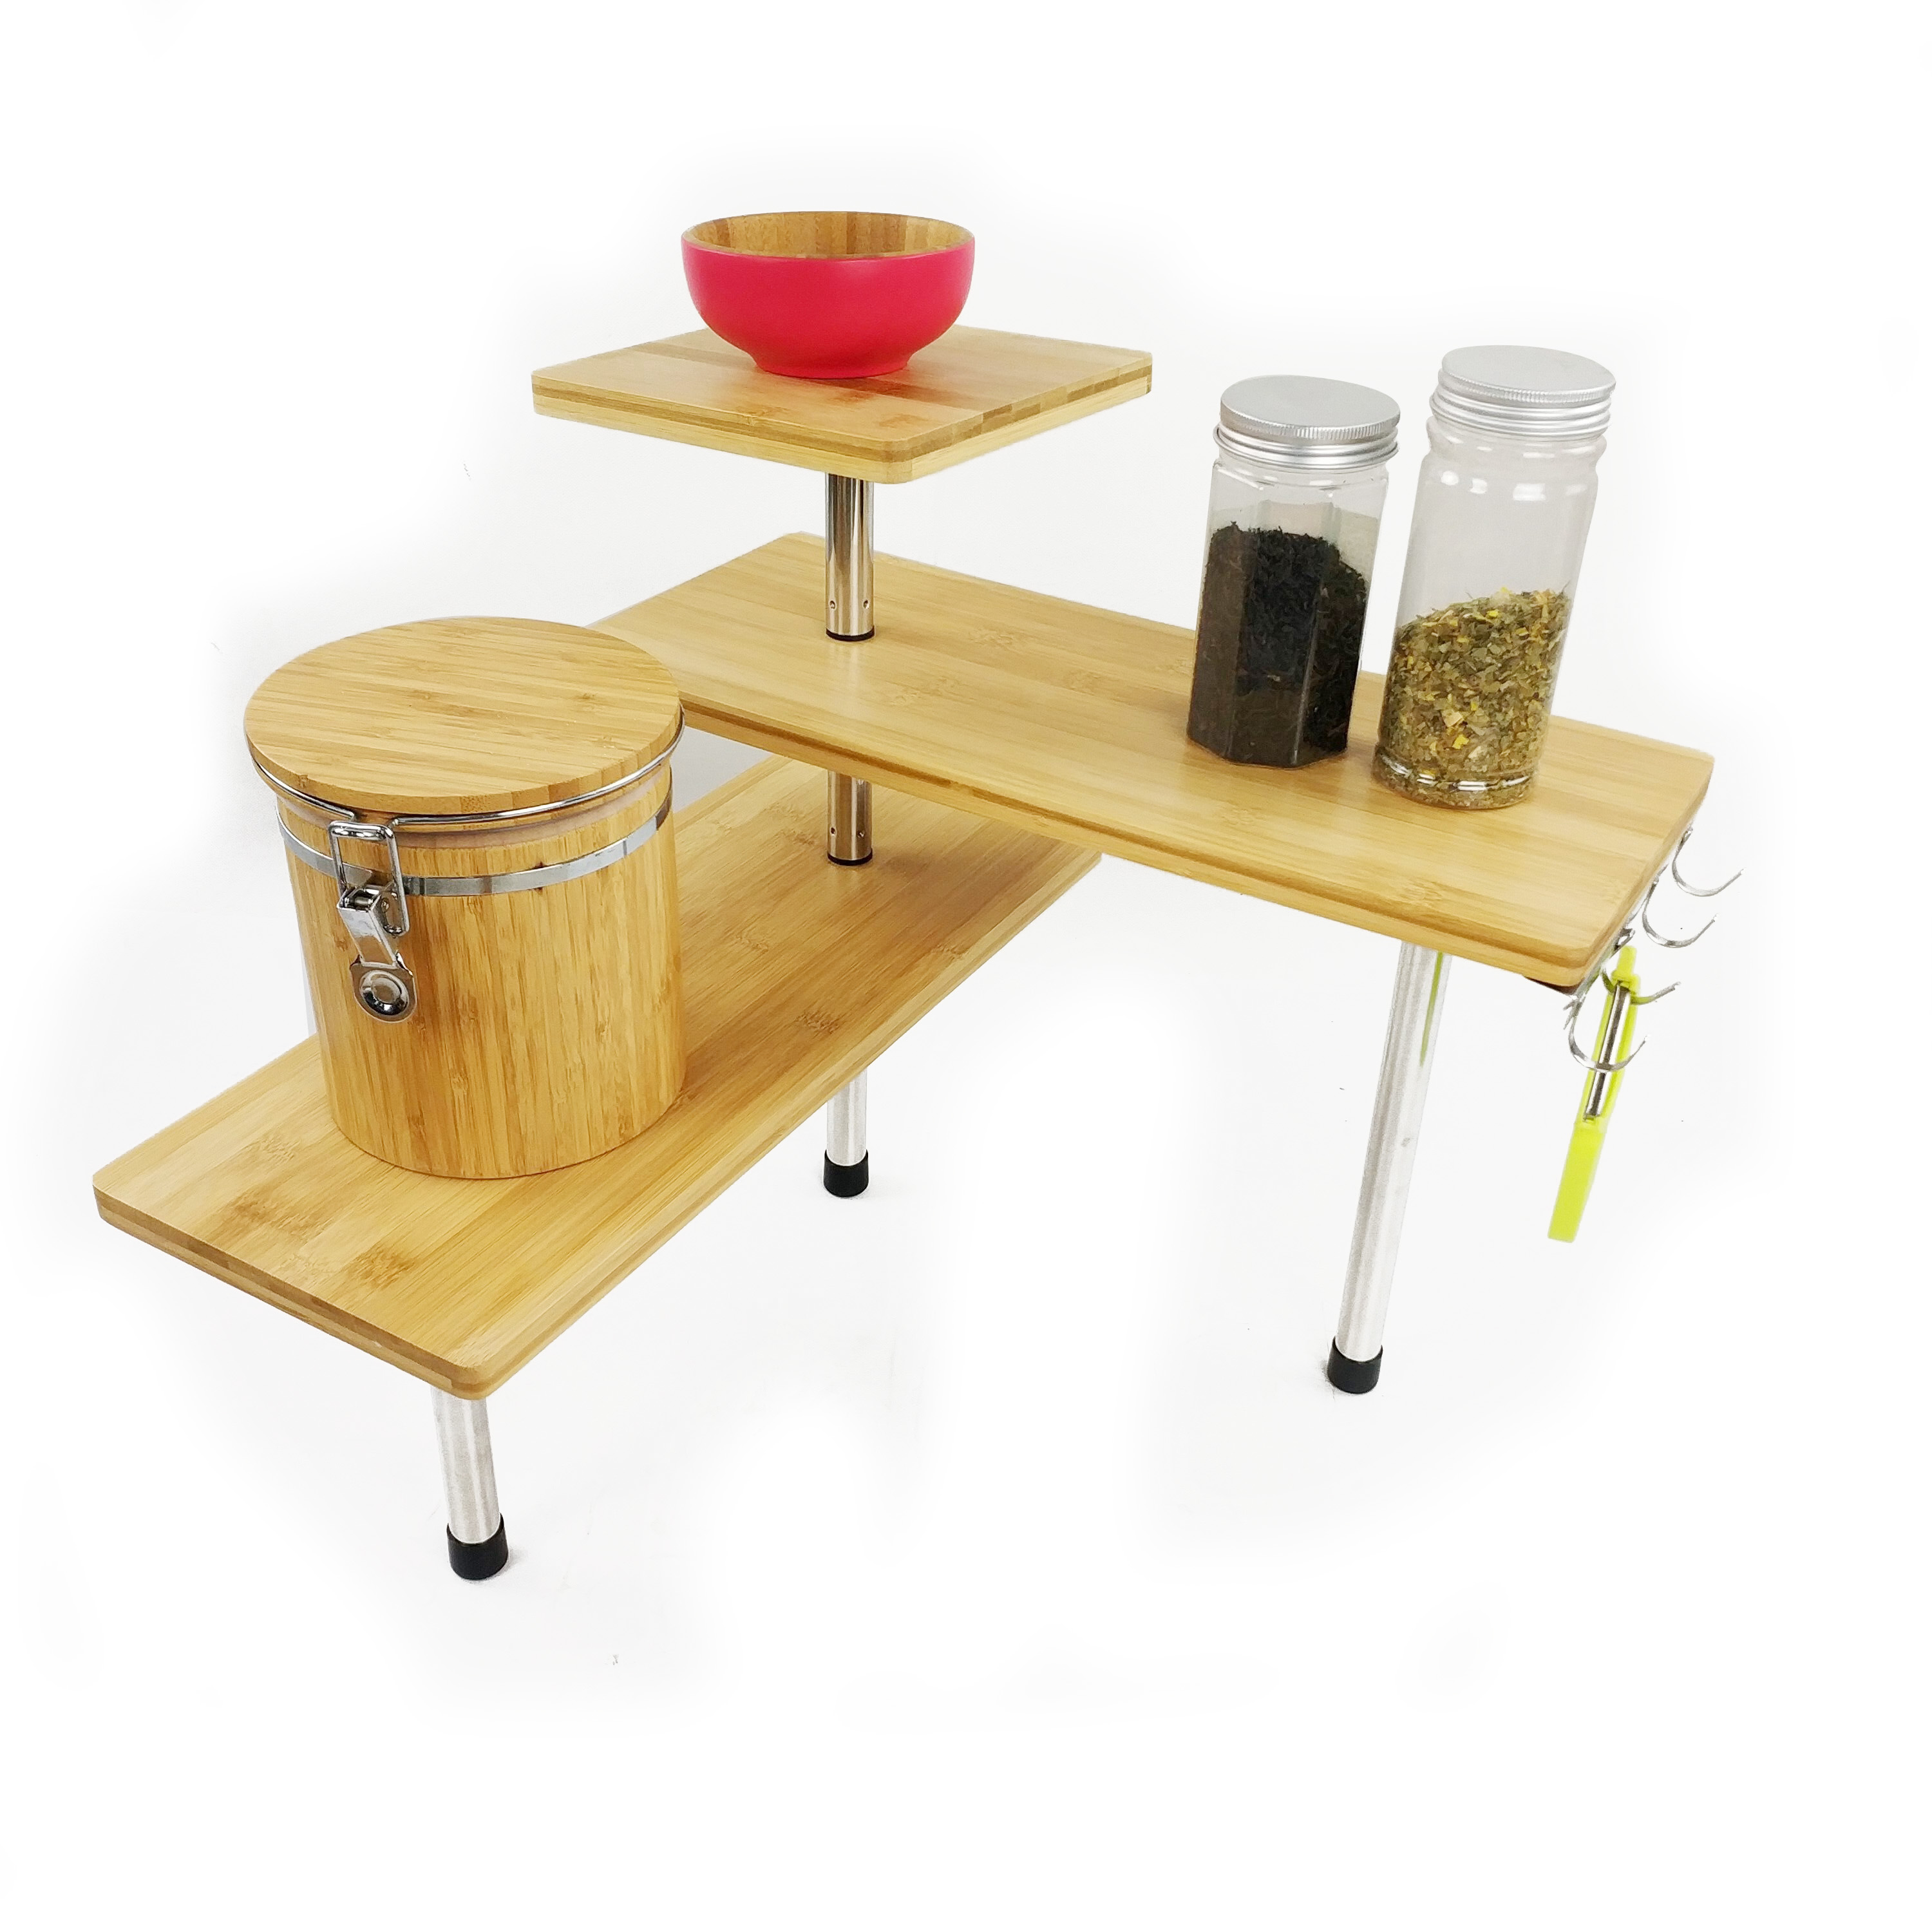 Bamboo expandable kitchen cabinet and counter shelf organizer